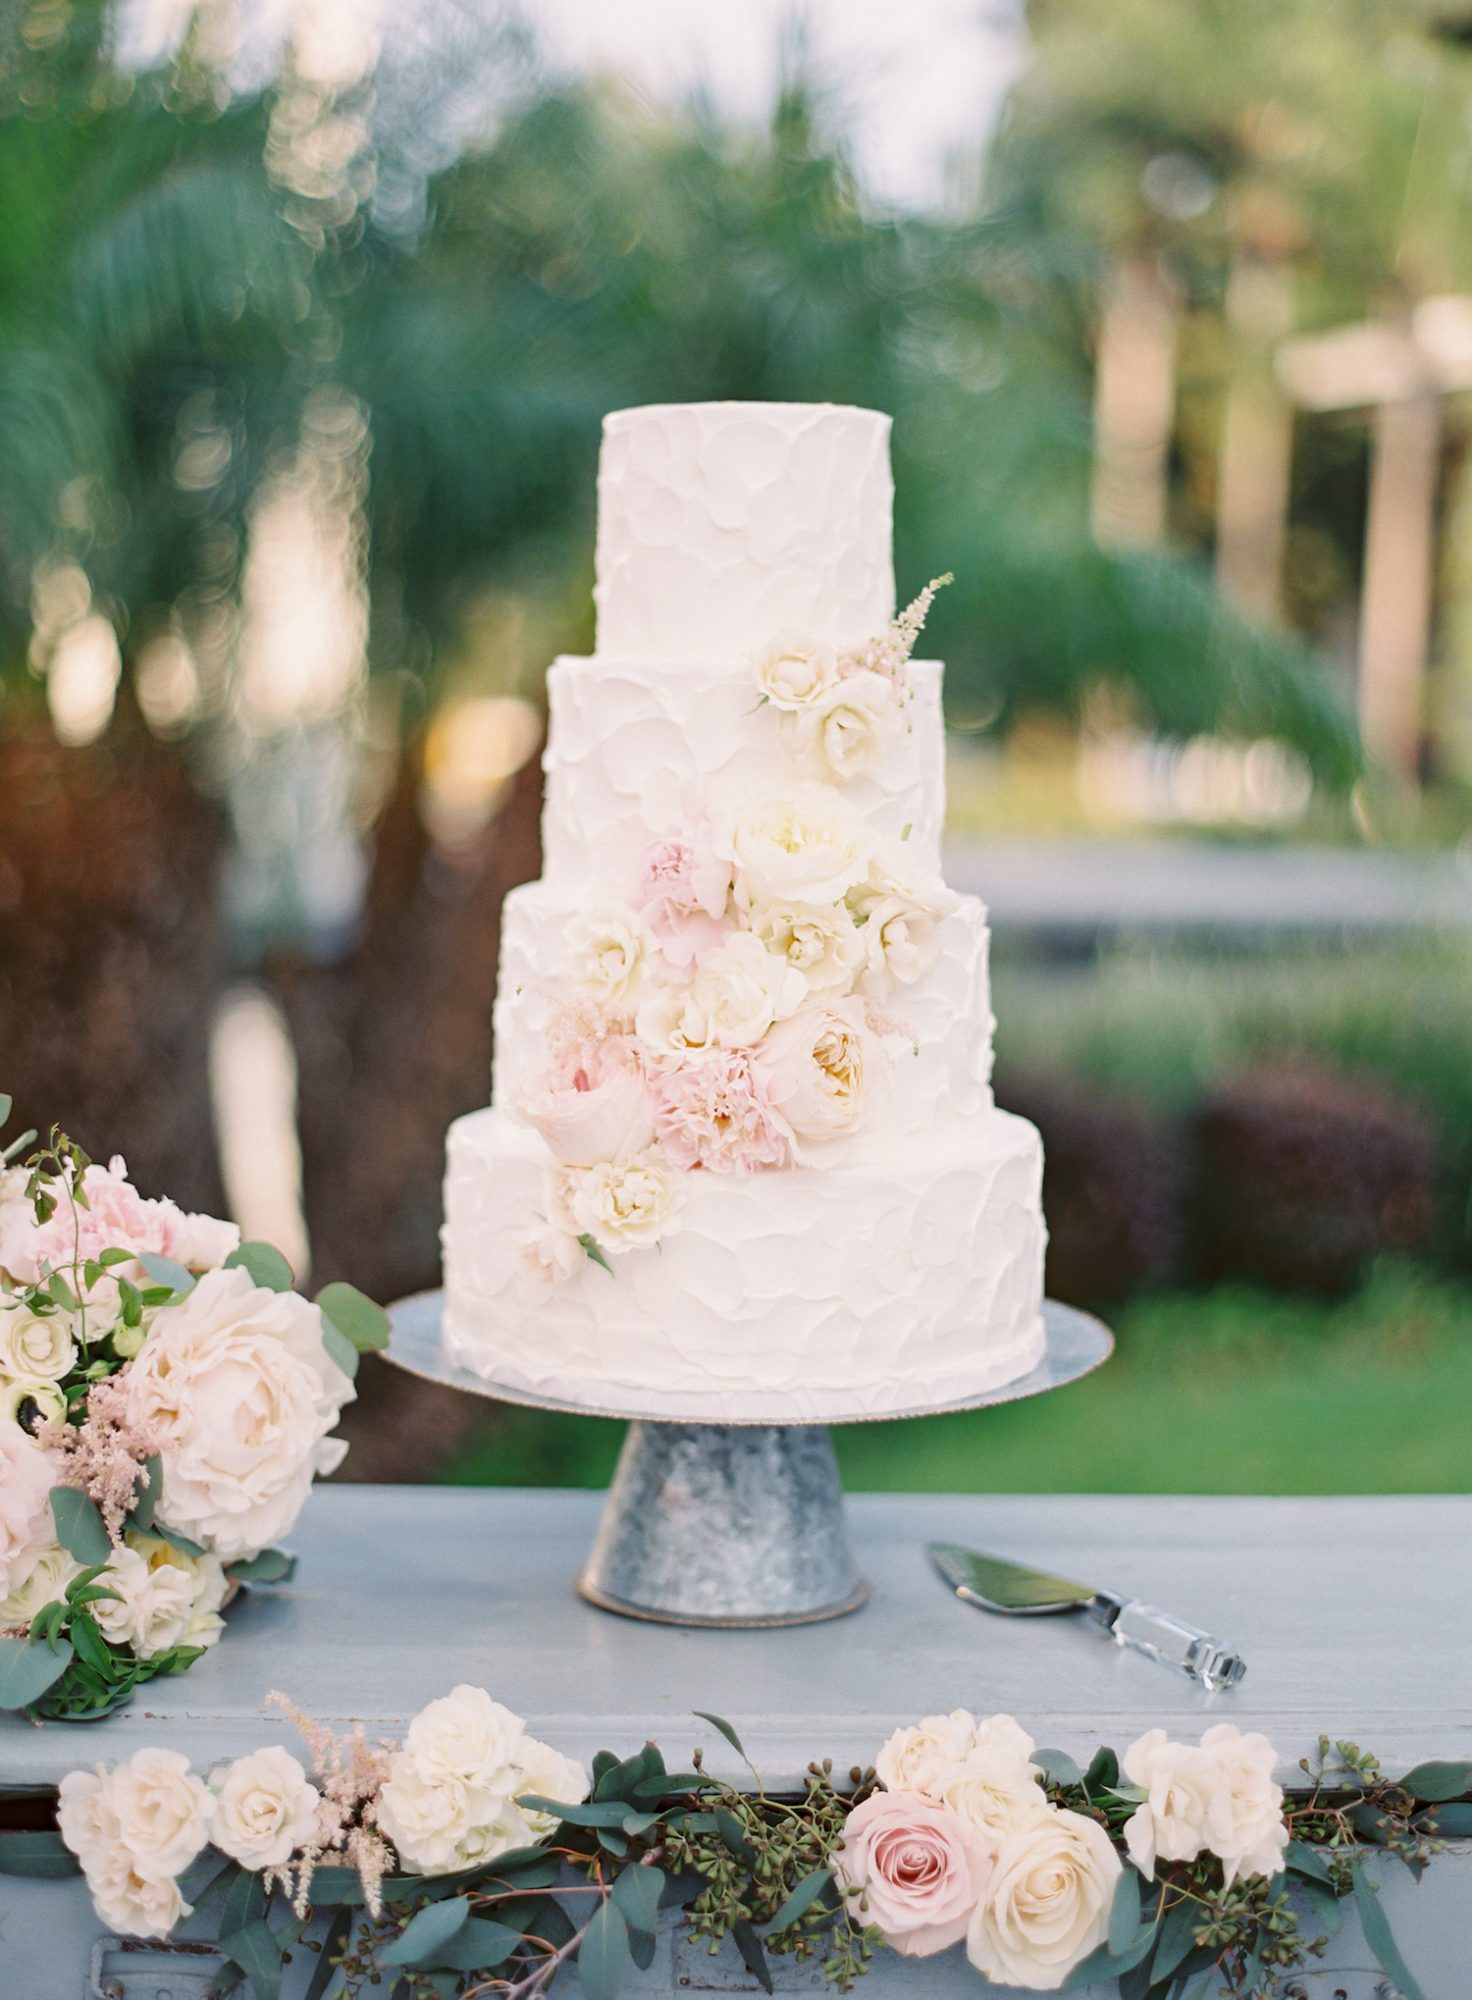 This sweet, textured confection was decorated in springy, bridal hues like blush and cream.